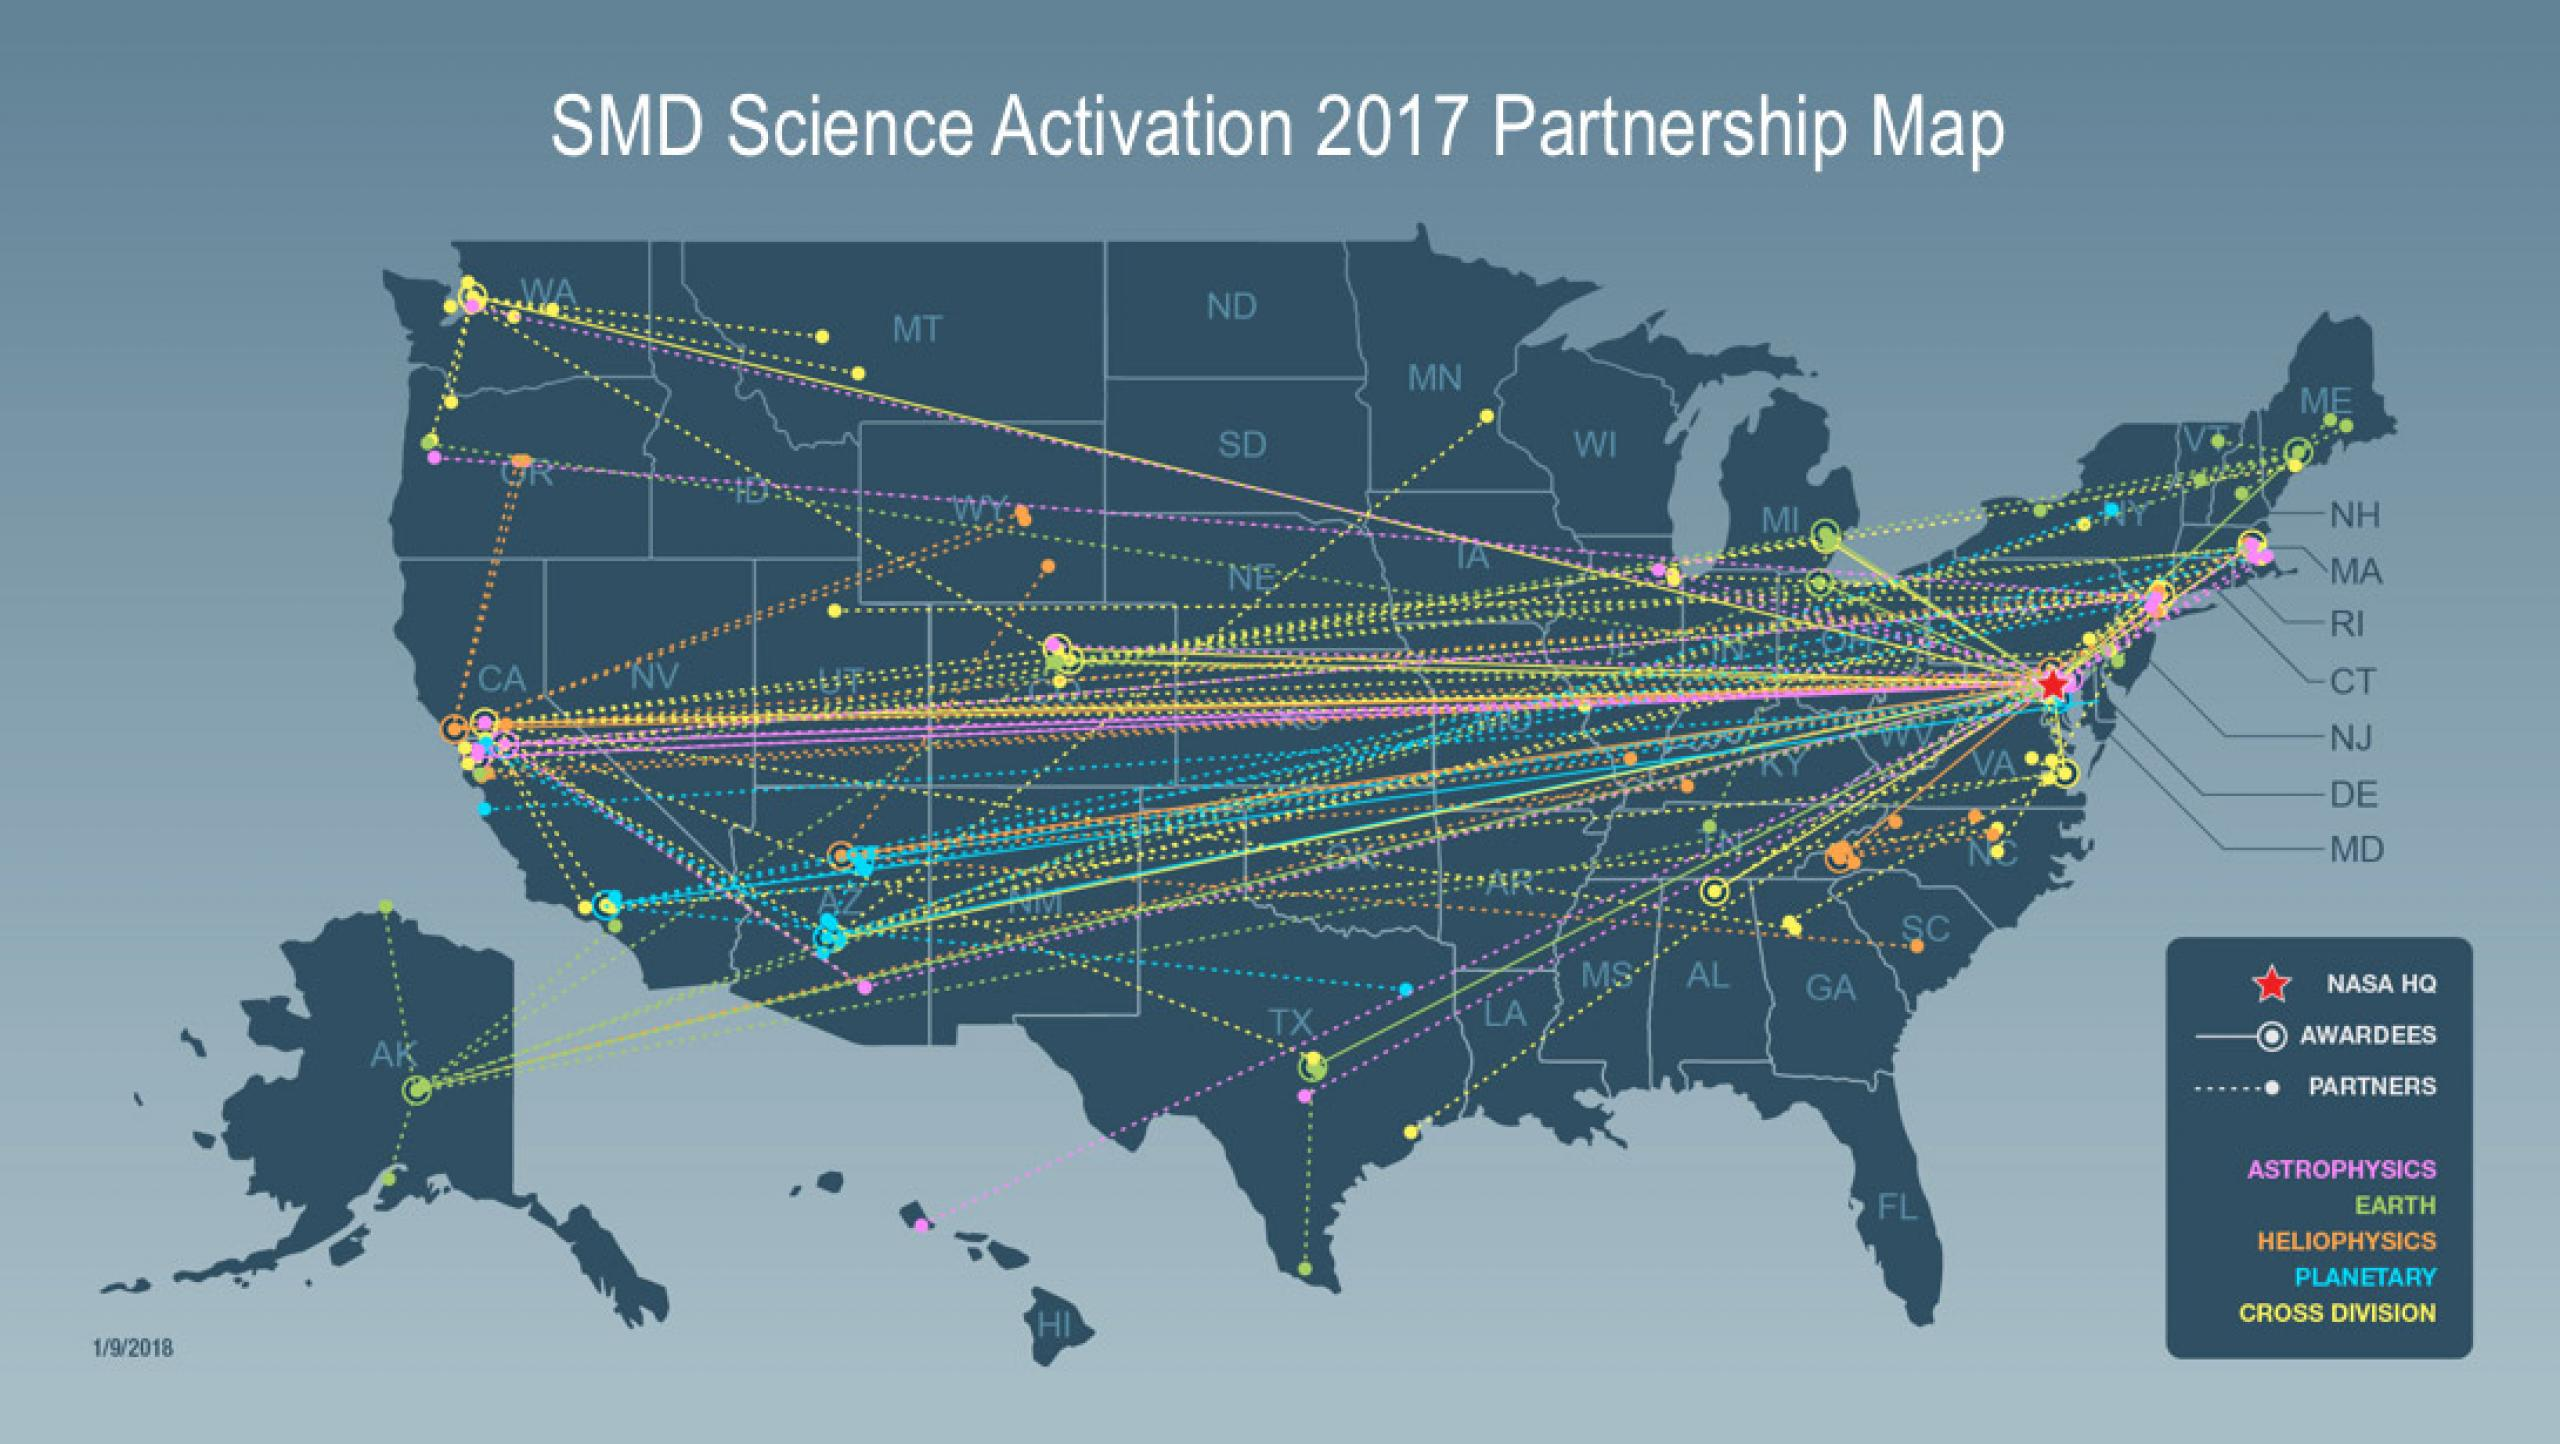 SMD Science Activation 2017 Partnership Map